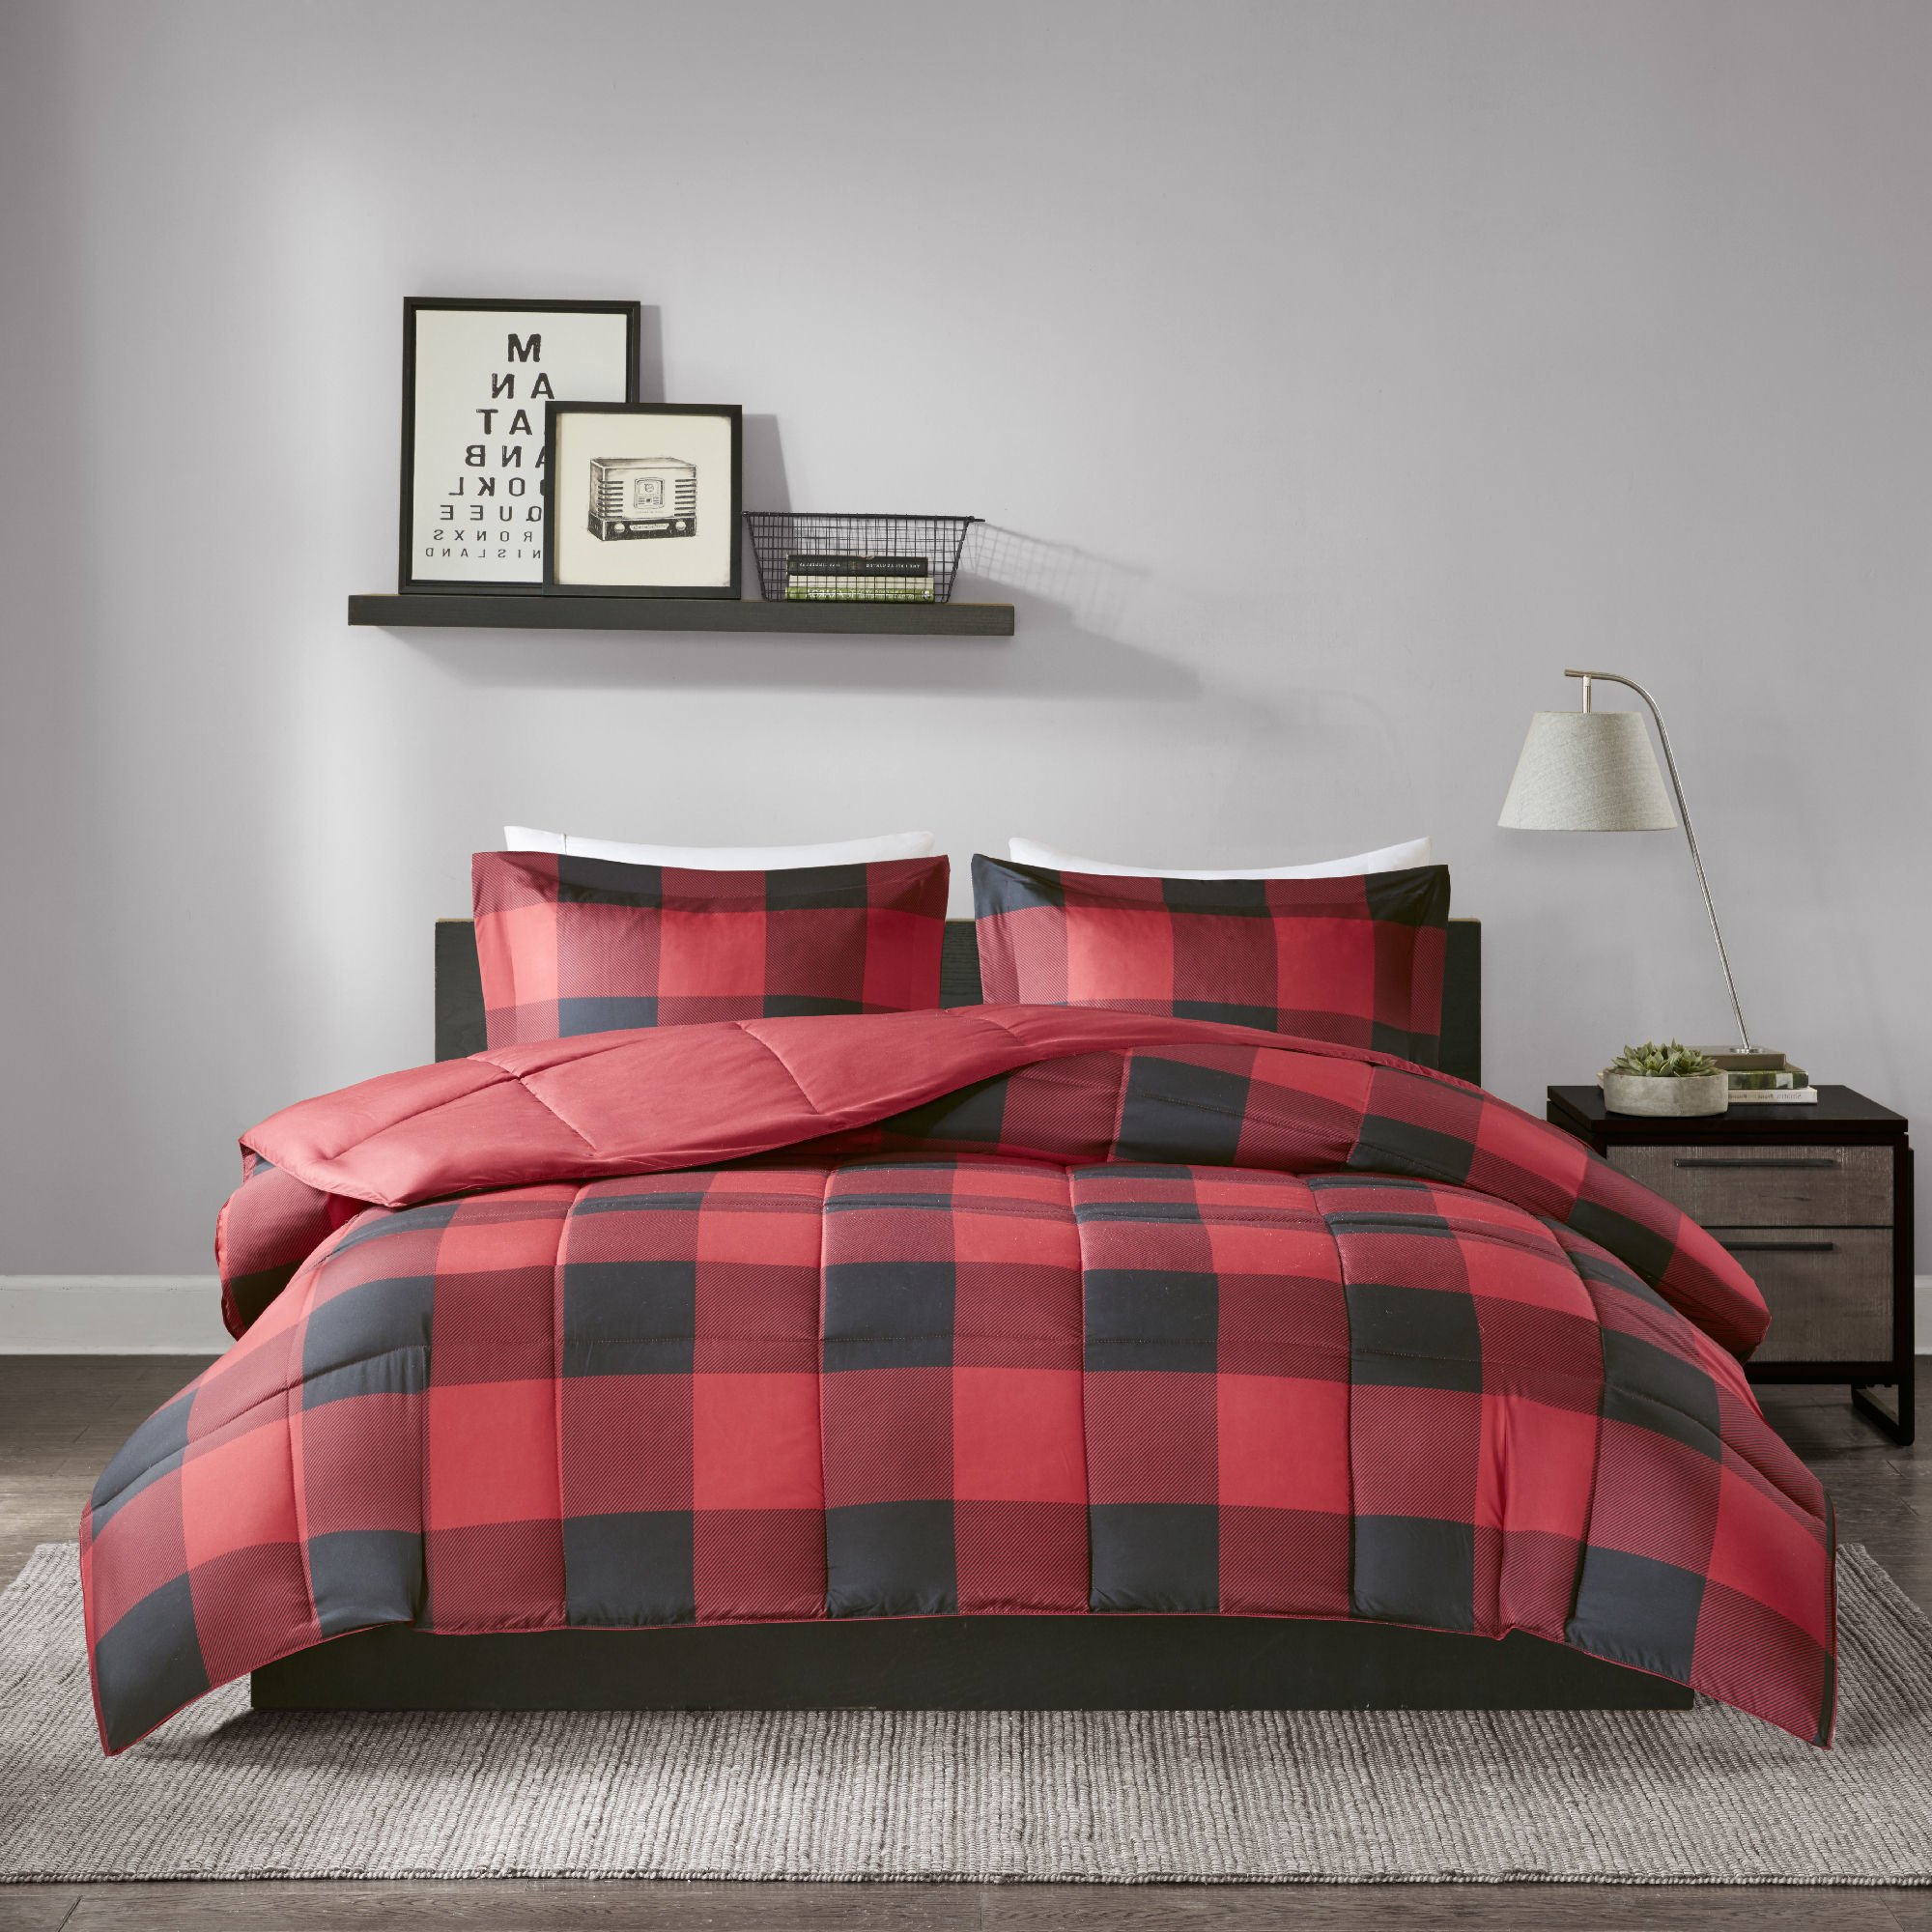 MPN 3 Piece Black Red Plaid Comforter Full Queen Set, Cabin Themed Bedding Lumberjack Pattern Squares Lodge Rustic Cottage Tartan Checkered Checked Lightweight, Microfiber